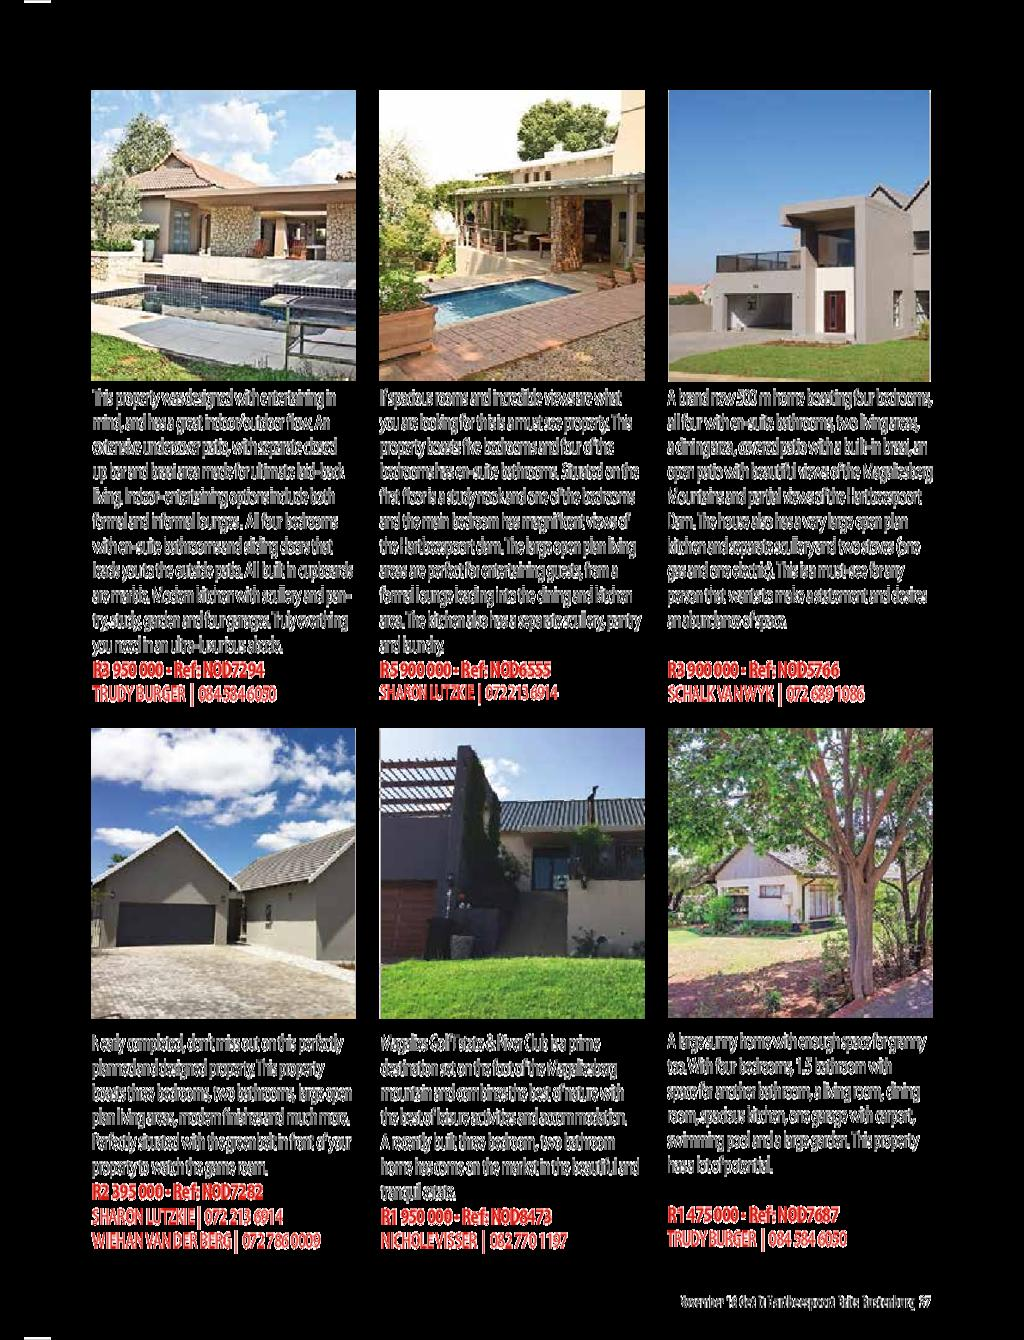 get-it-hartbeespoort-december-2016-epapers-page-39